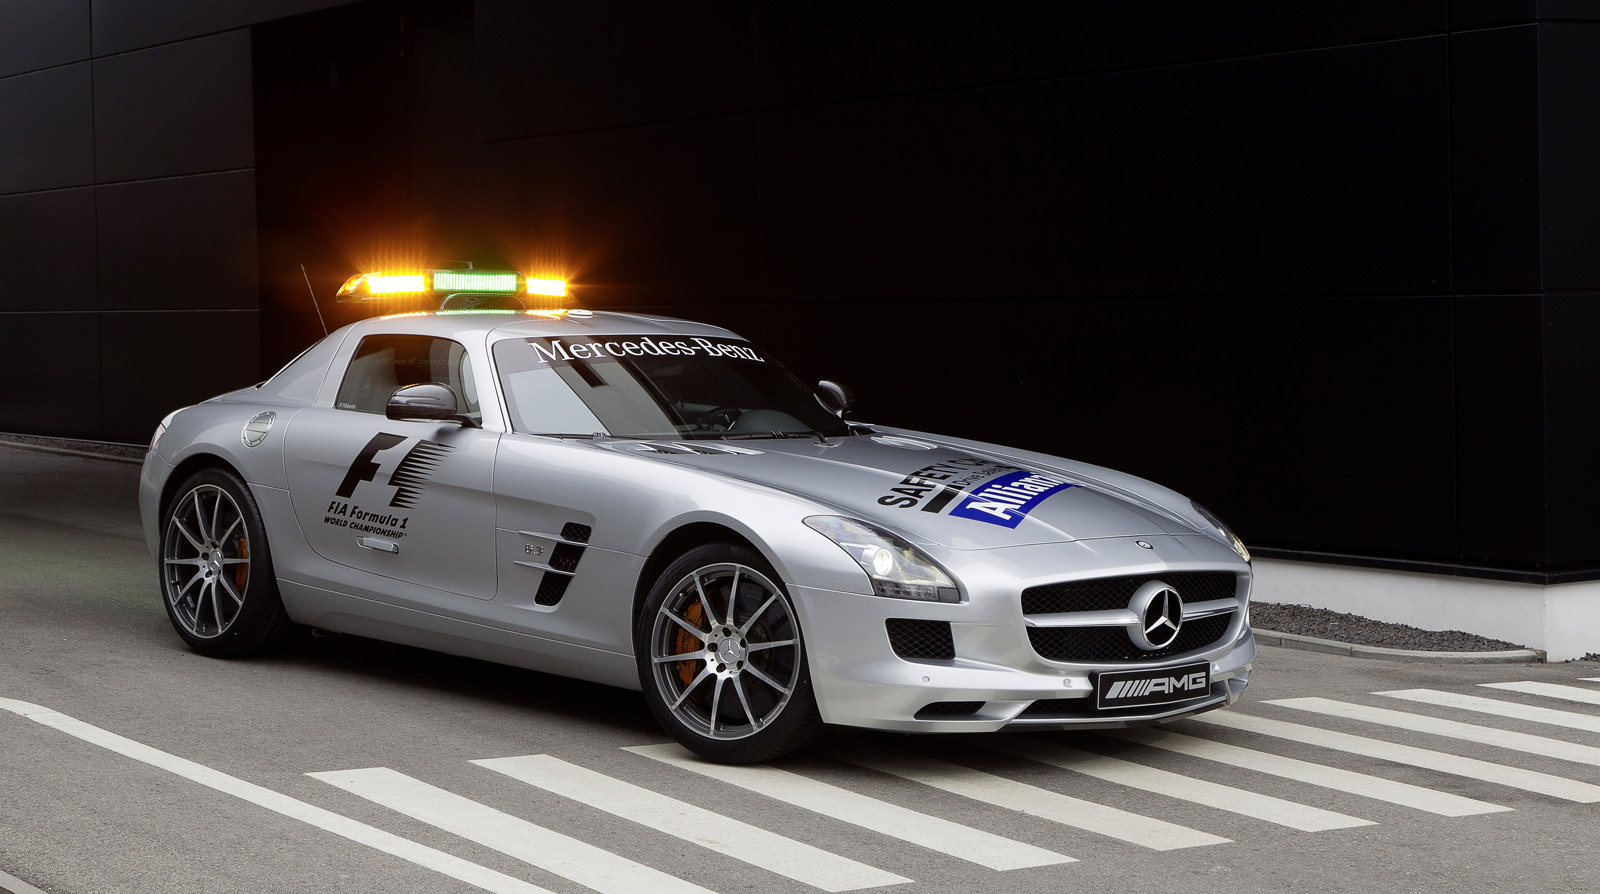 Mercedes benz sls amg and c63 amg back on f1 safety duty for Mercedes benz race car